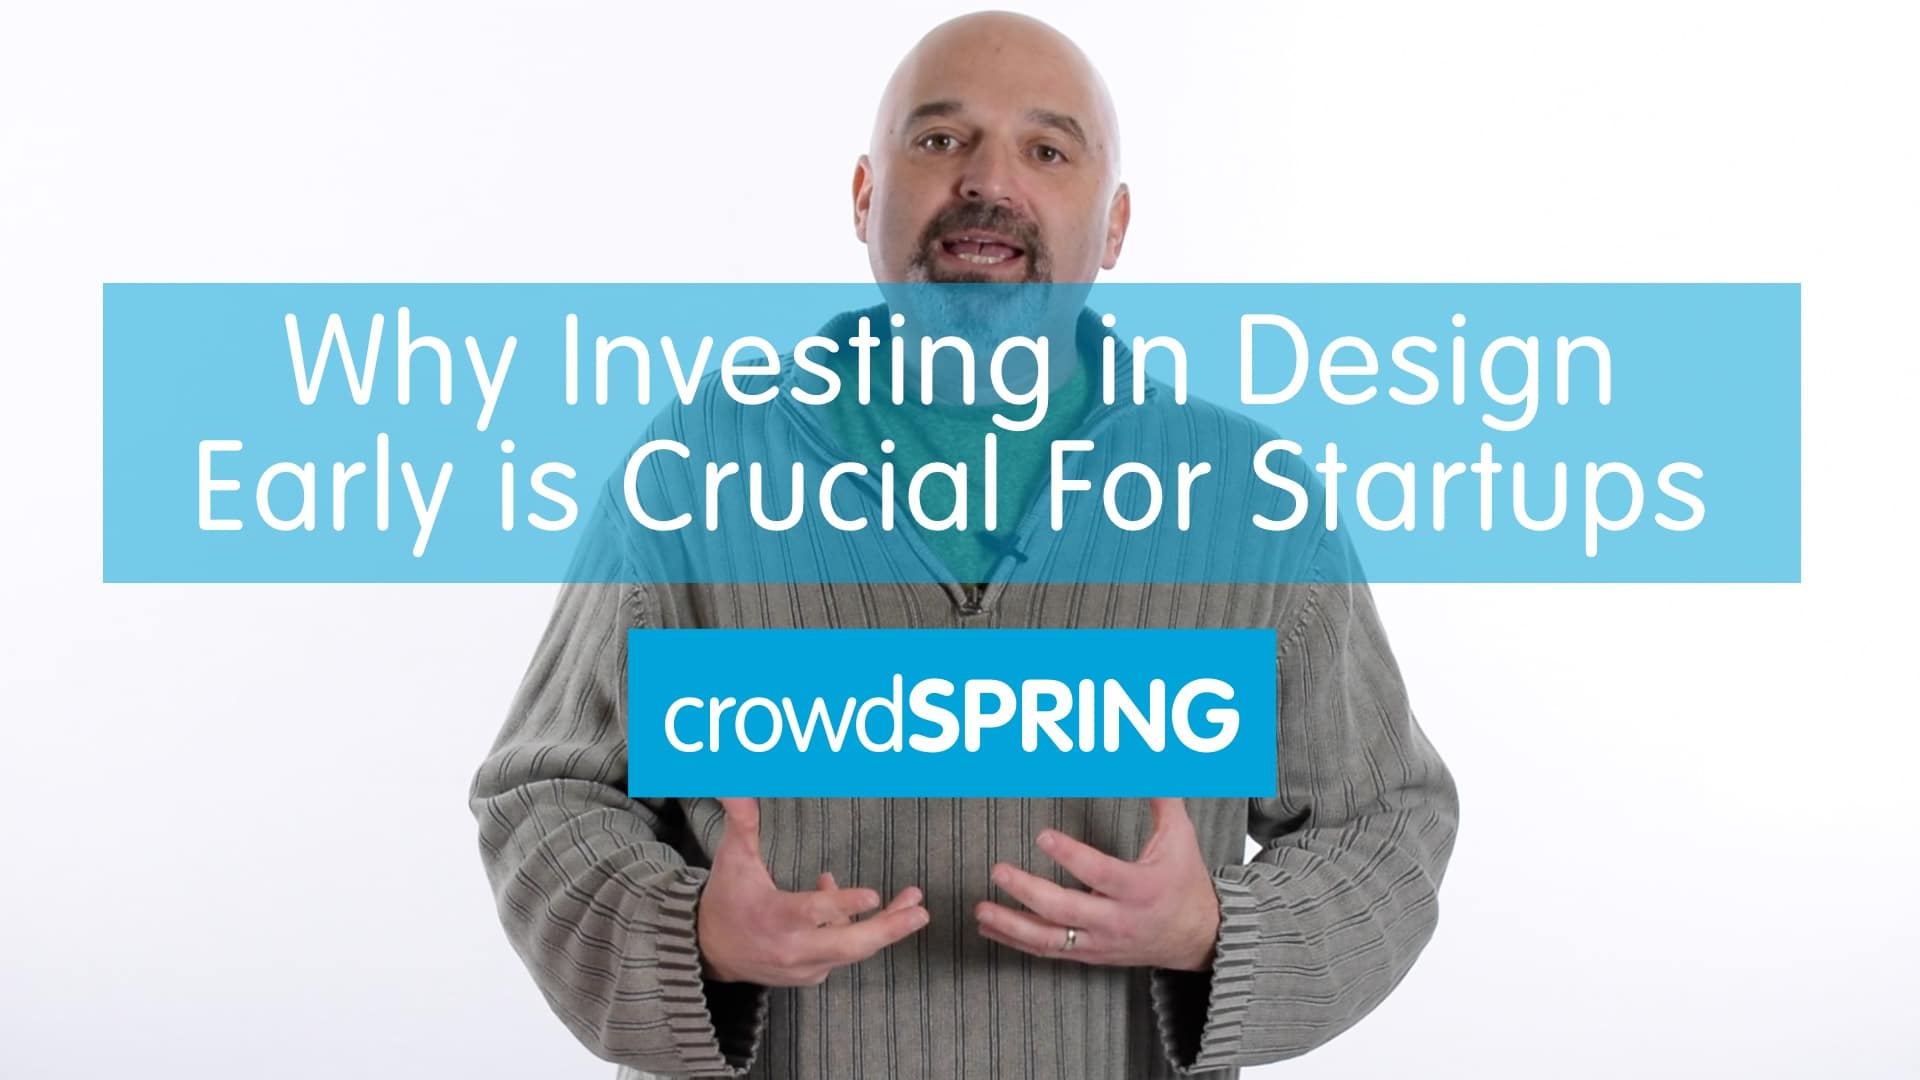 Why Investing in Design Early is Crucial For Startups